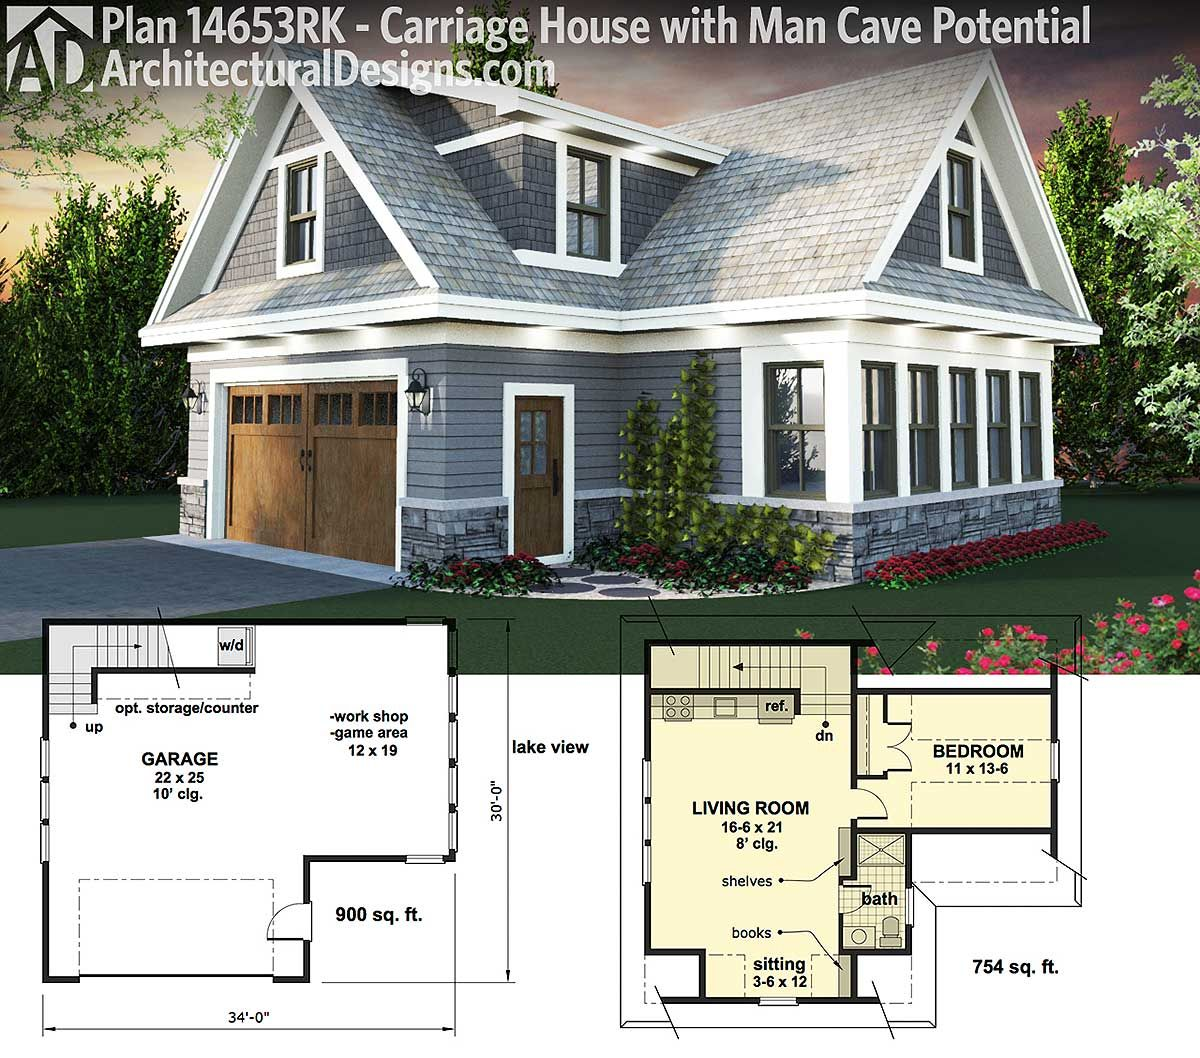 Plan 14653rk Carriage House Plan With Man Cave Potential Garage